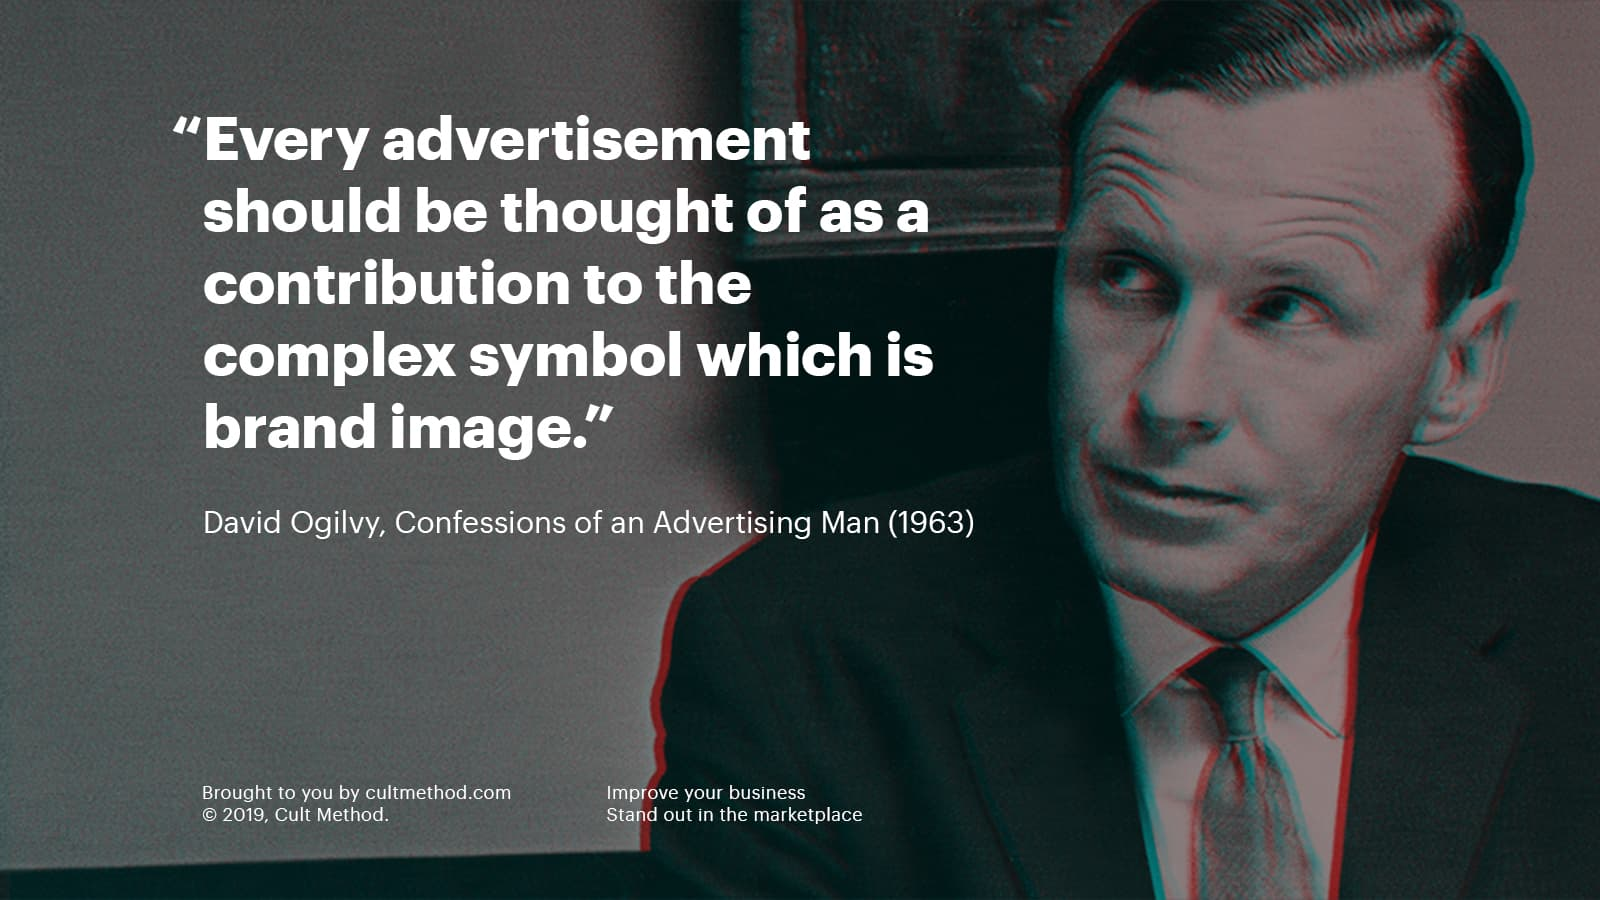 [Advertising legend David Ogilvy on the importance of branding in advertising